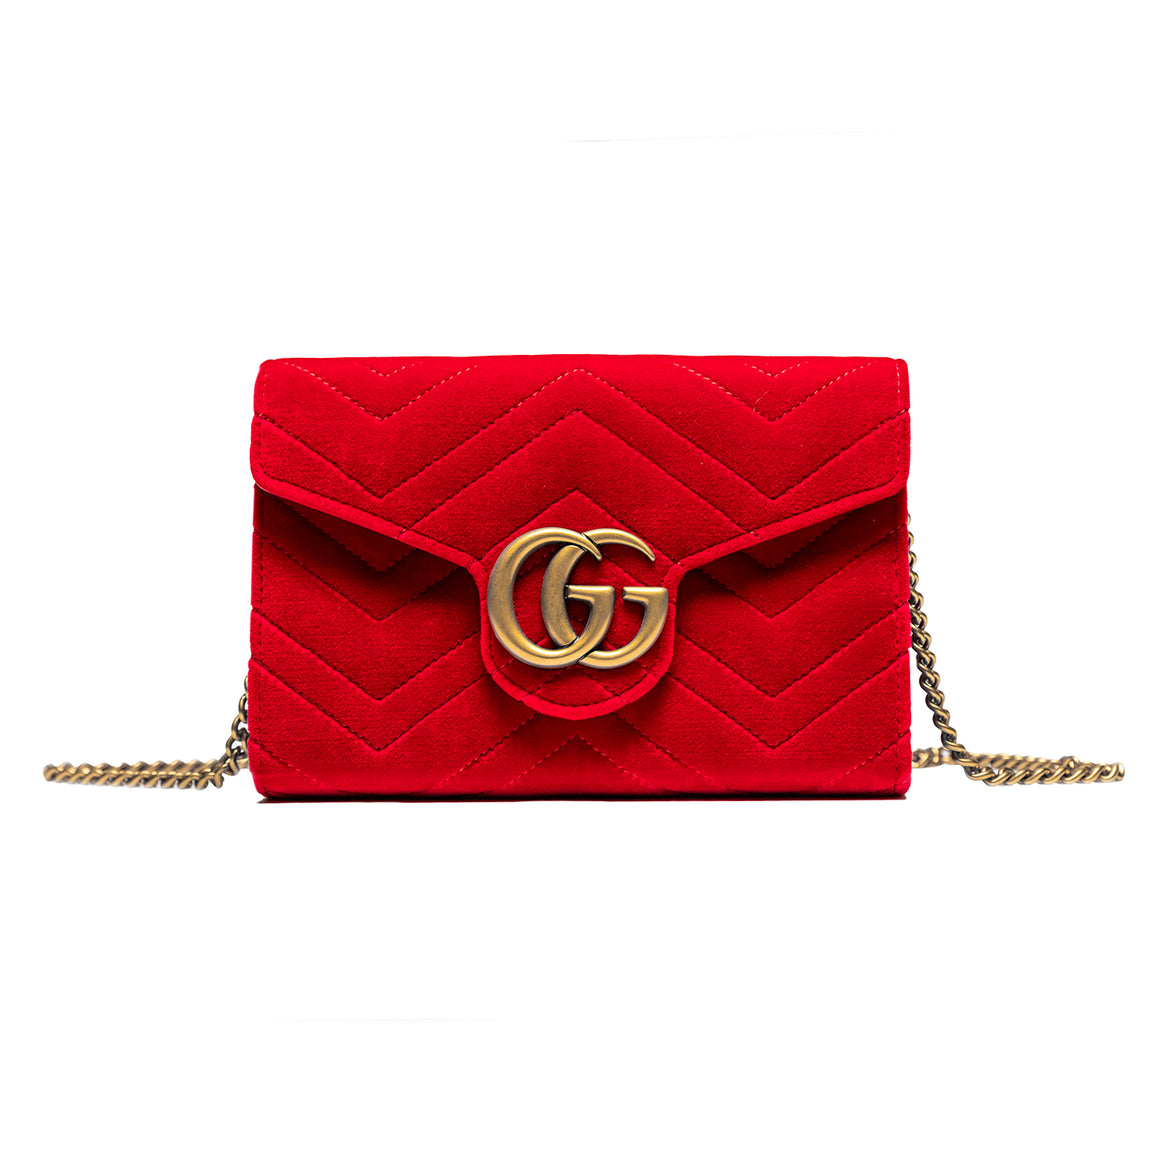 Gucci Marmont Gg Red Velvet Shoulder Bag (Mini)